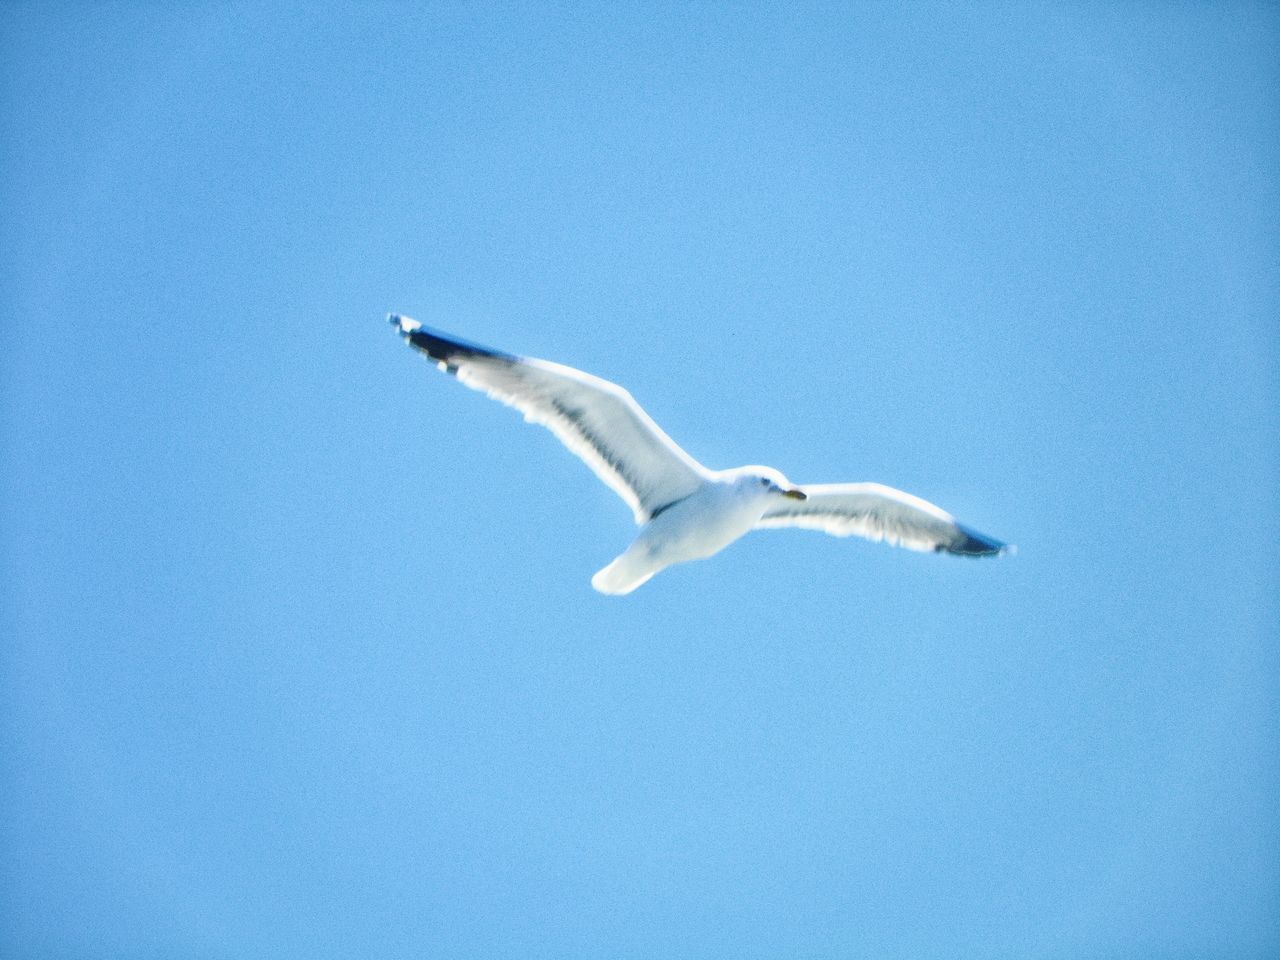 flying, spread wings, one animal, animals in the wild, mid-air, animal themes, copy space, clear sky, bird, low angle view, blue, day, no people, nature, animal wildlife, outdoors, seagull, sky